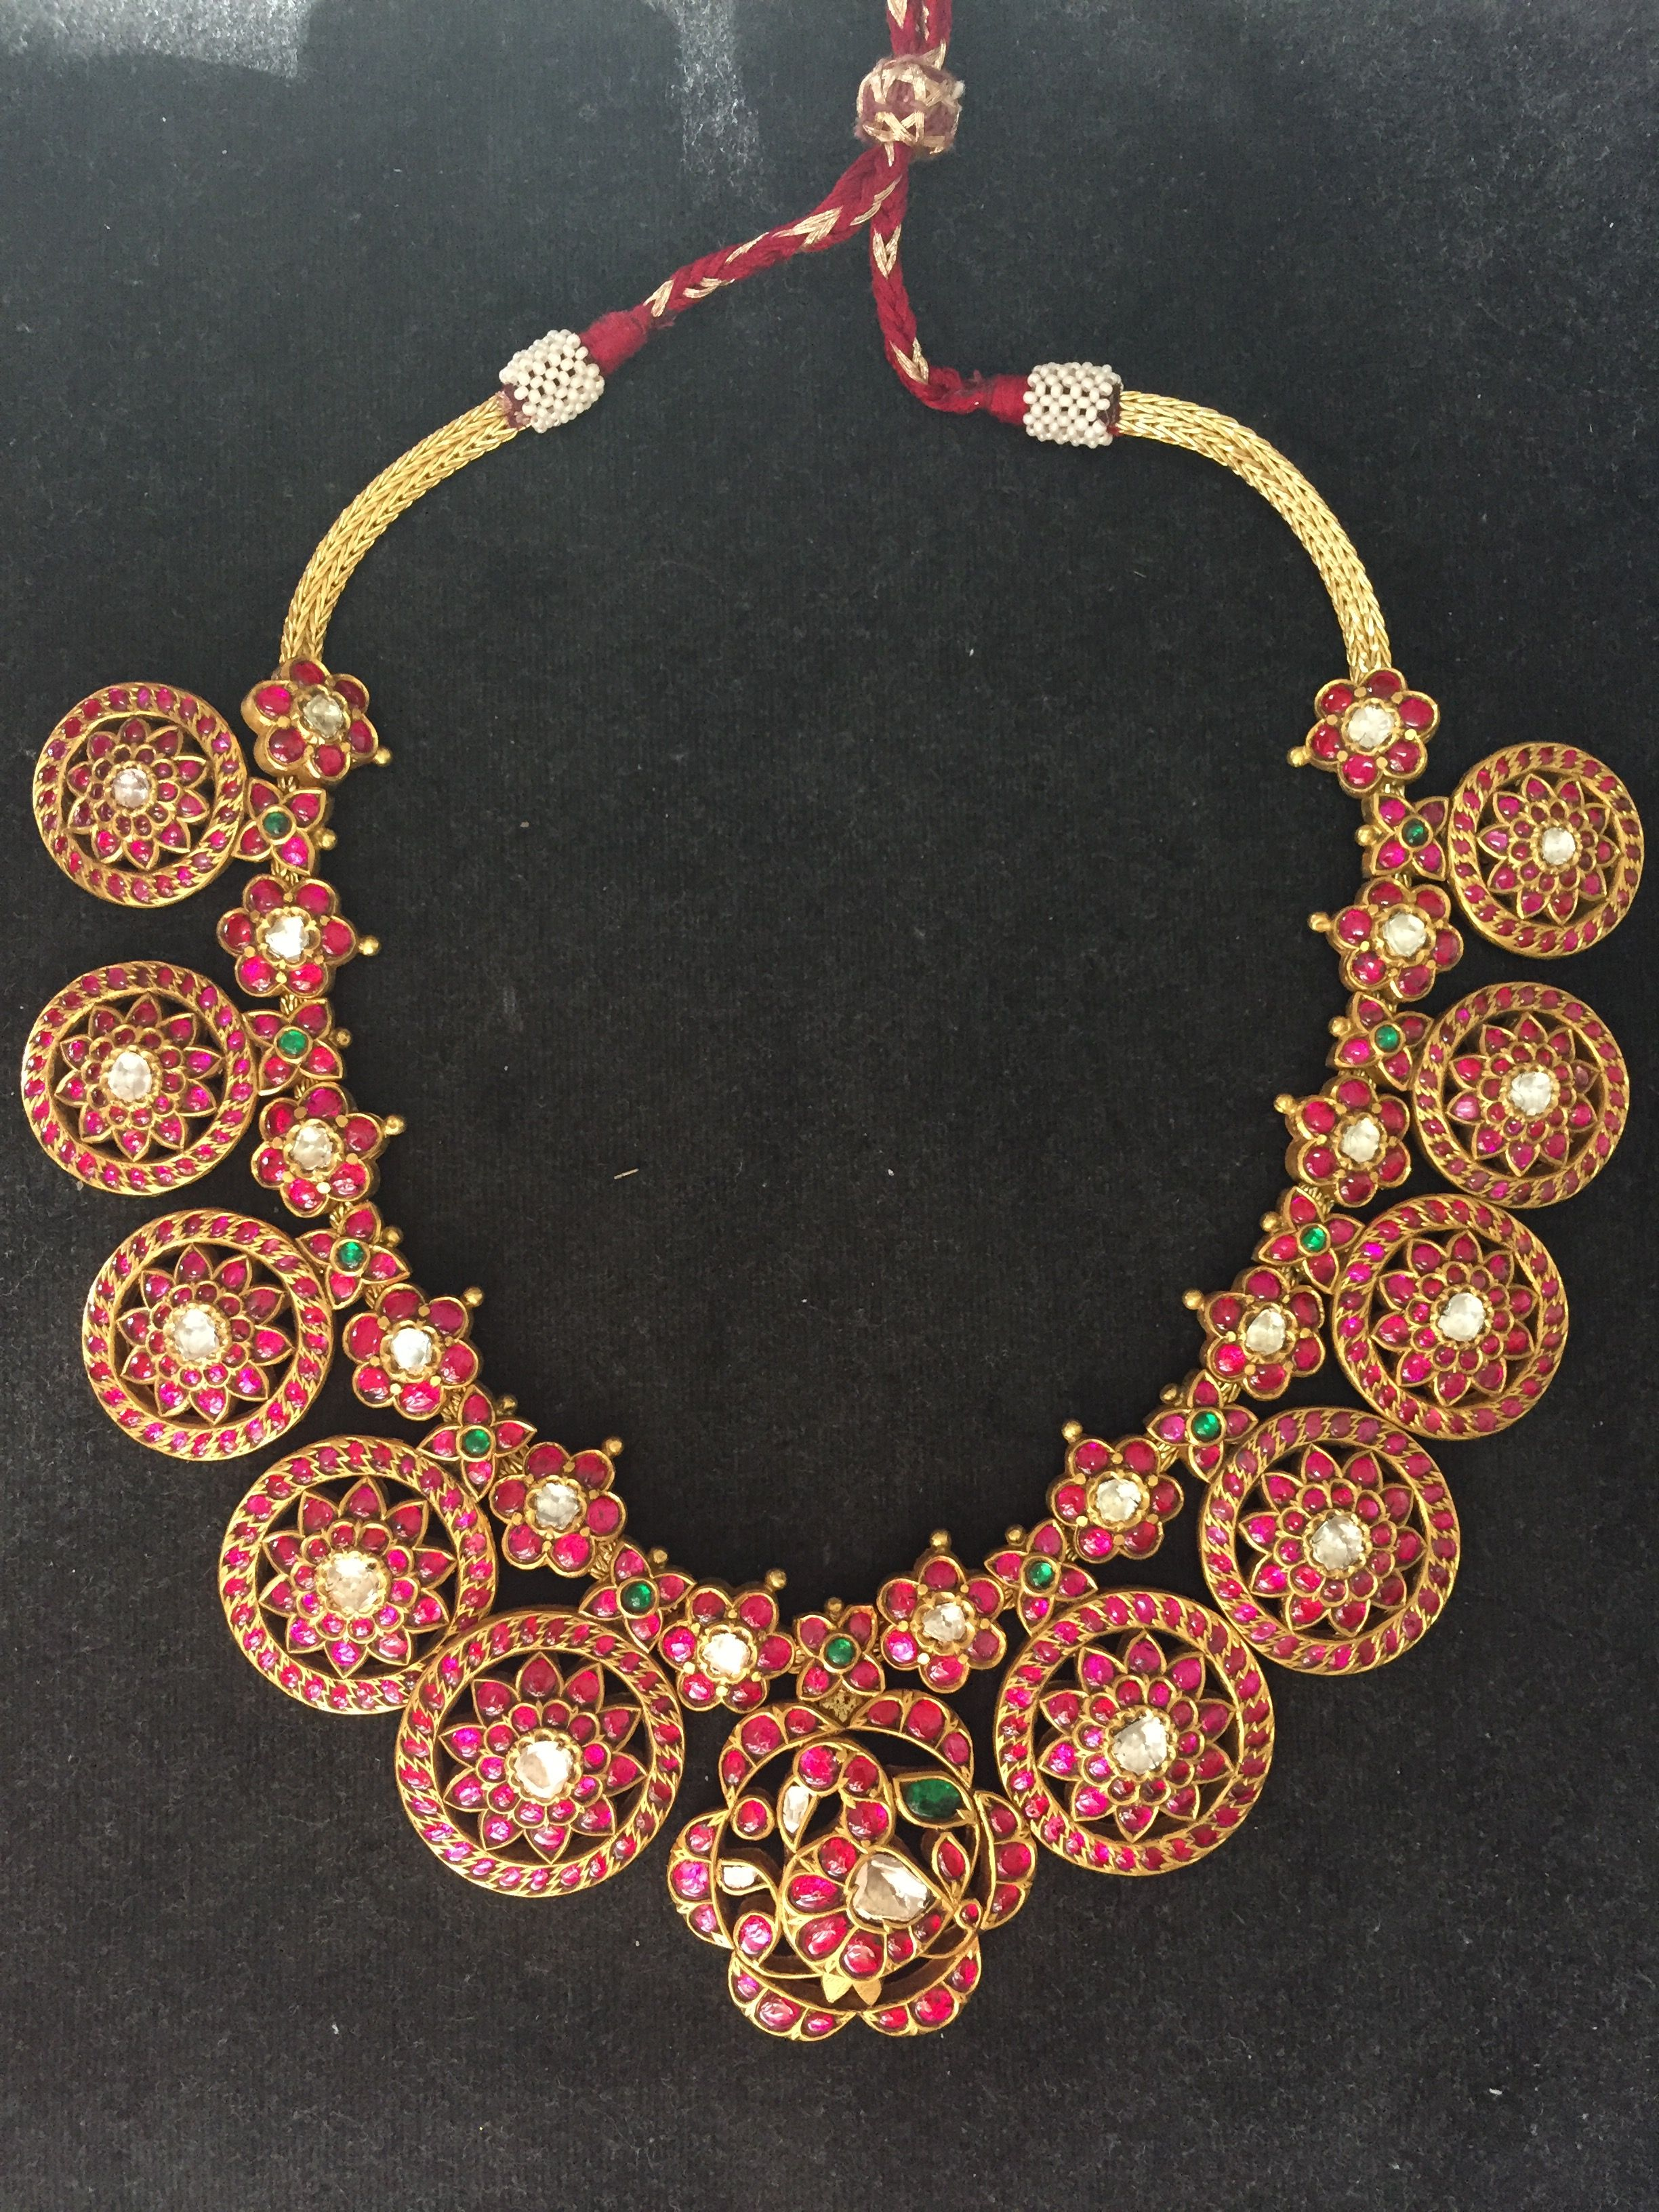 225 Grams Heavy Kundan Necklace Jewelery Indian Jewelry And 1 Set Perhiasan India Ruby With Uncut Emeralds Southindian Jewellery